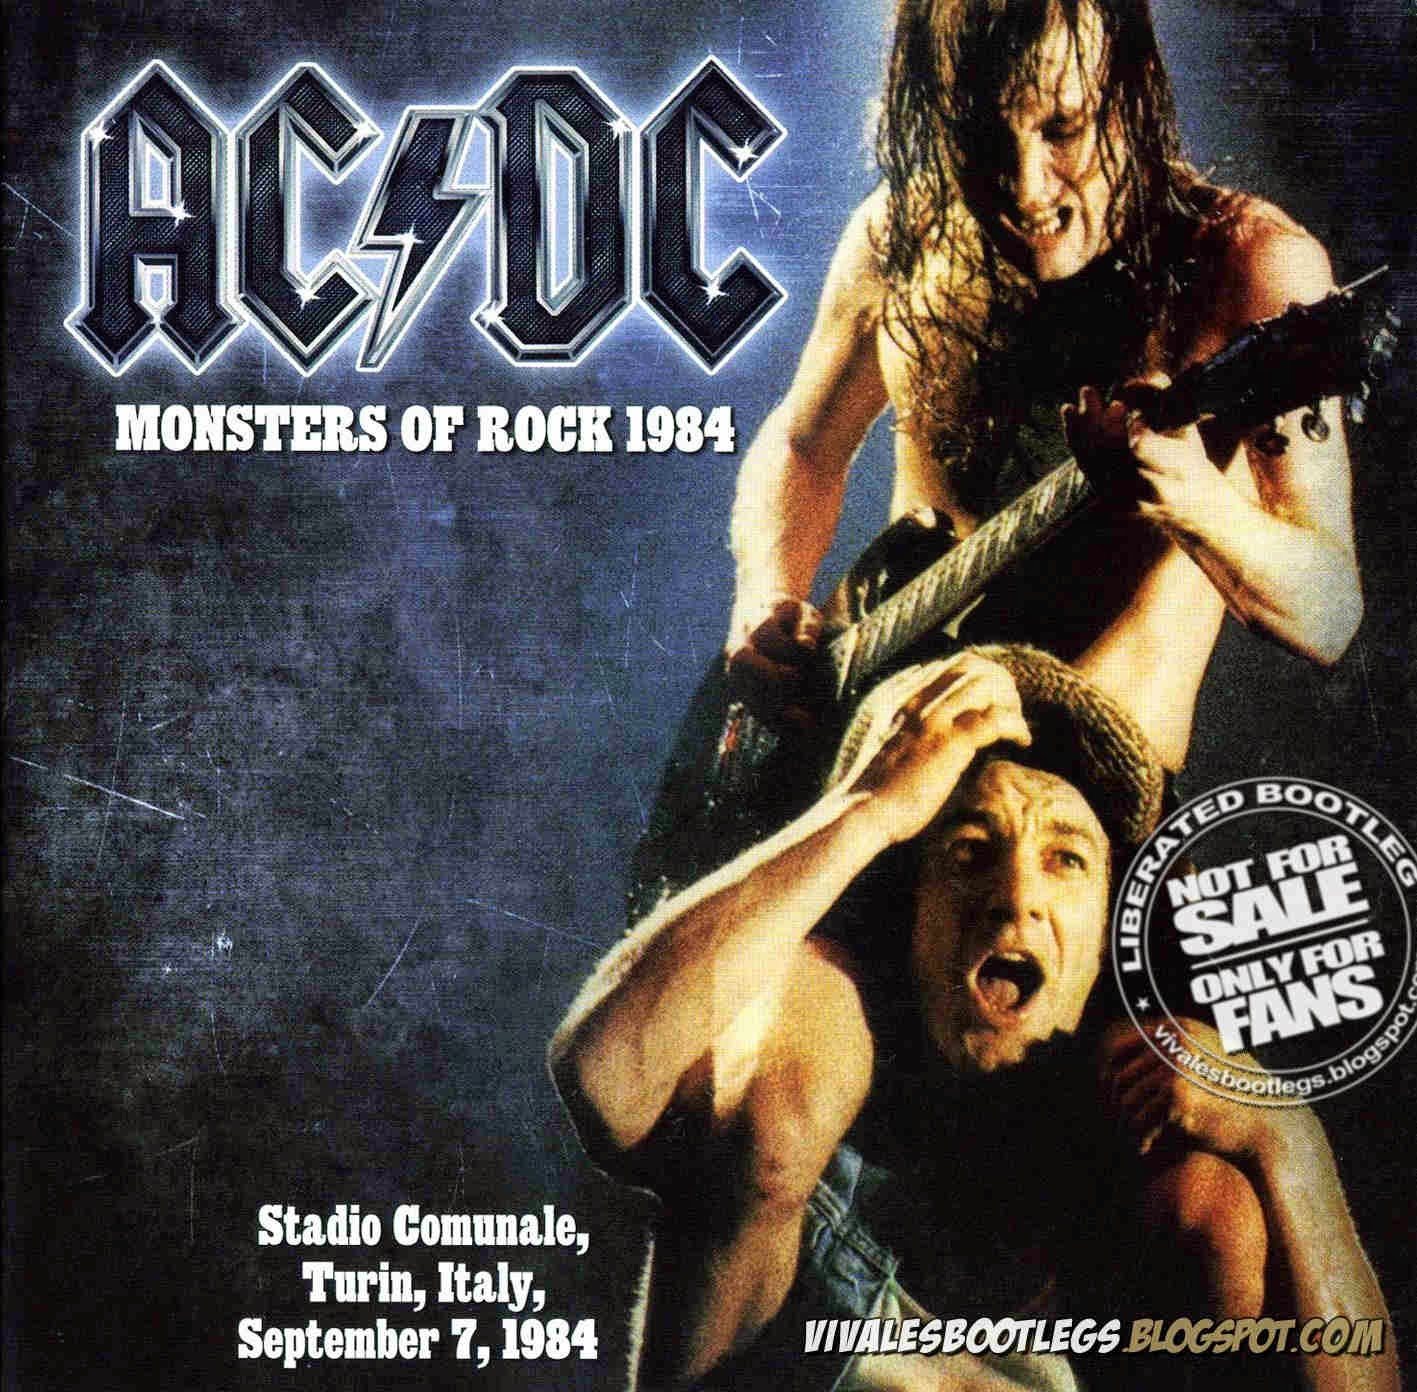 ACDC Monsters of Rock 1984 front cover